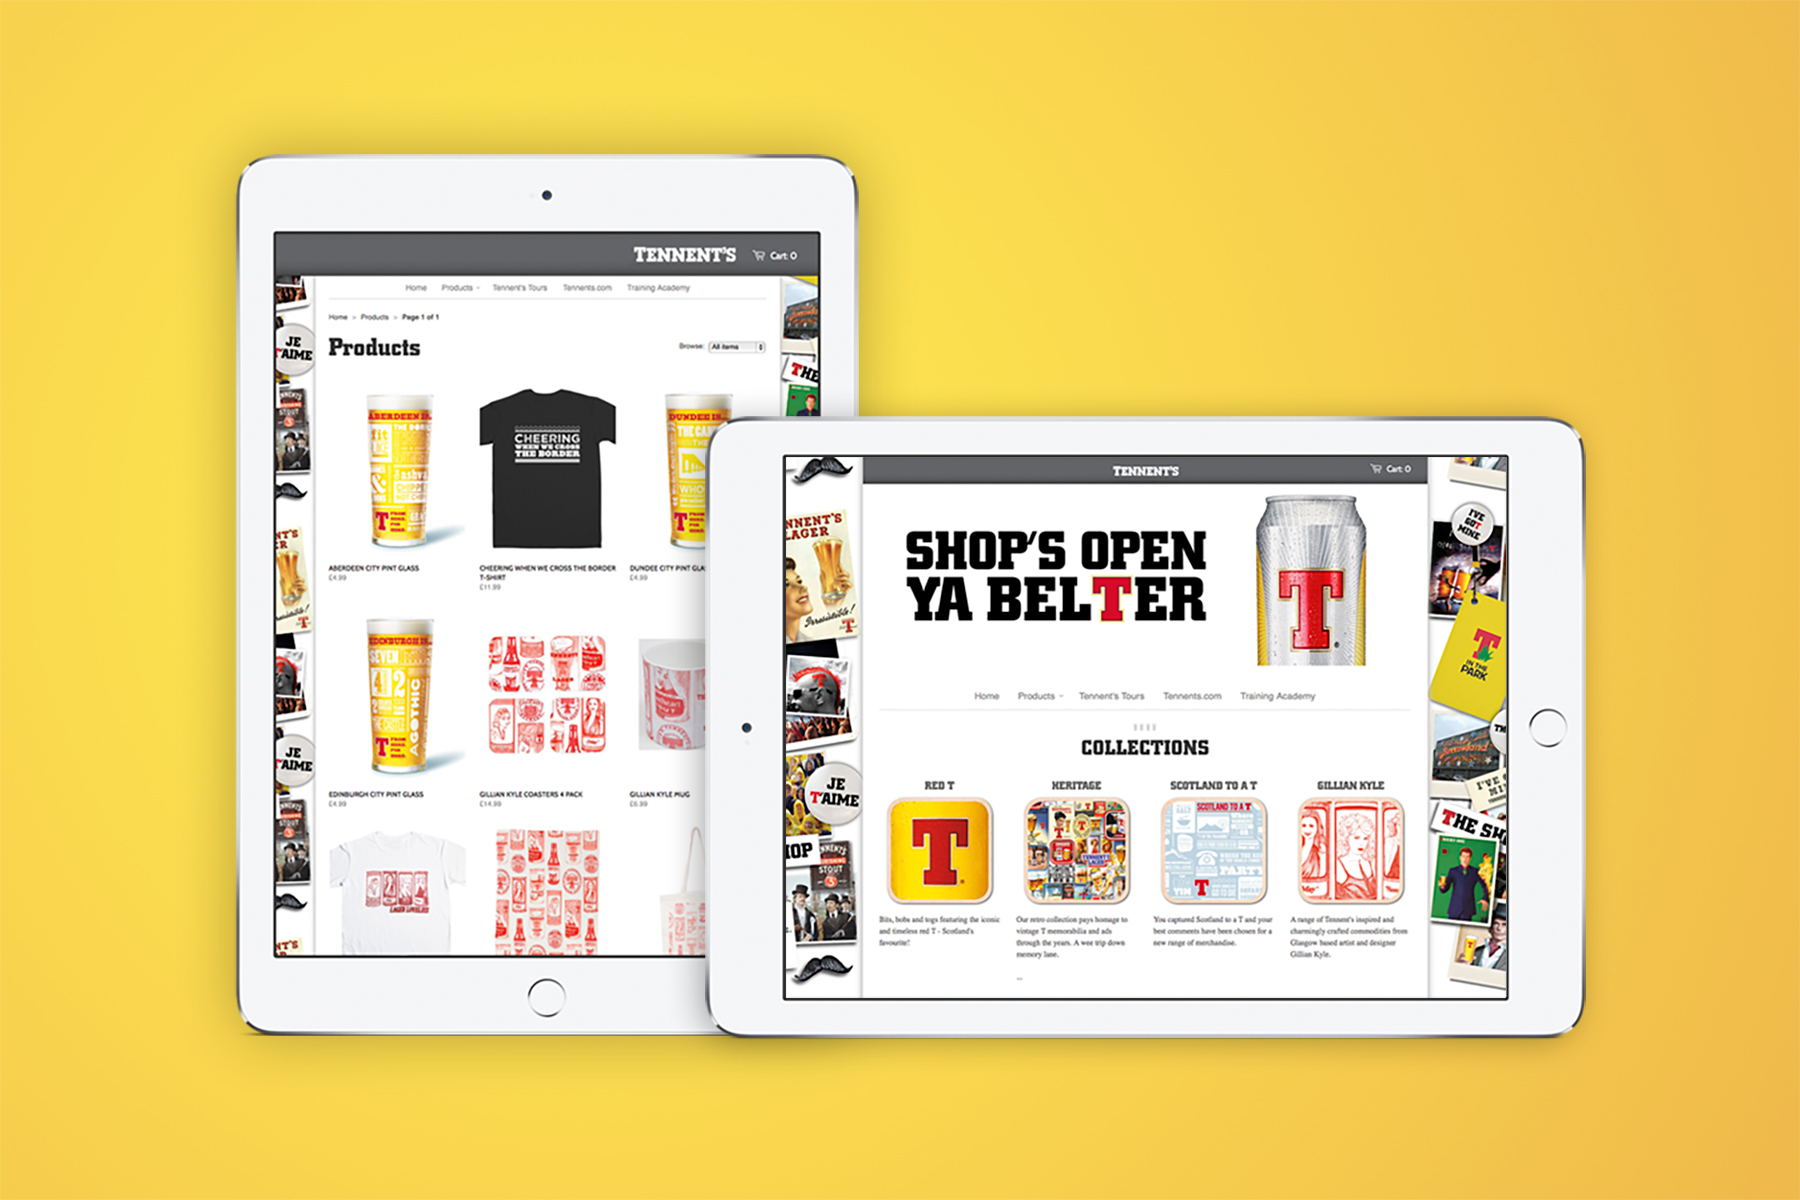 Tennents-Shop_iPad-Air_1800x1200-Large